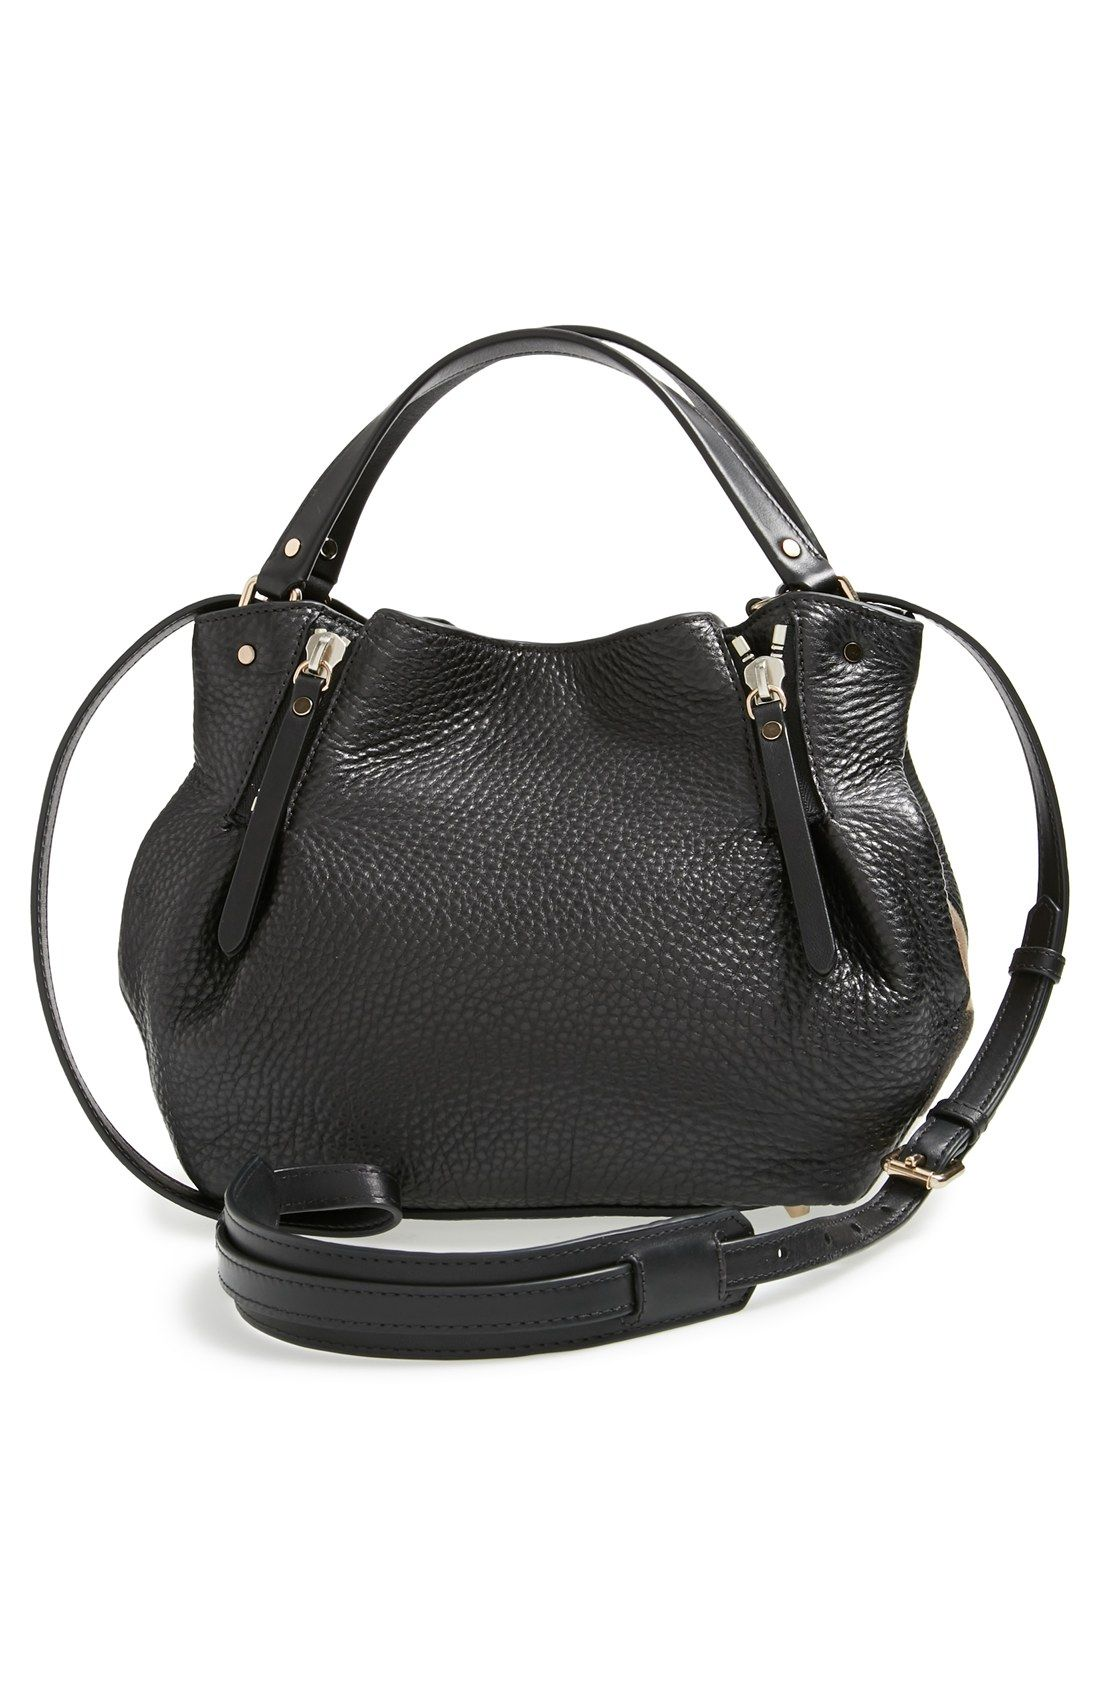 db354f032caf Save on the Burberry Maidstone Black Satchel! This satchel is a top 10  member favorite on Tradesy.